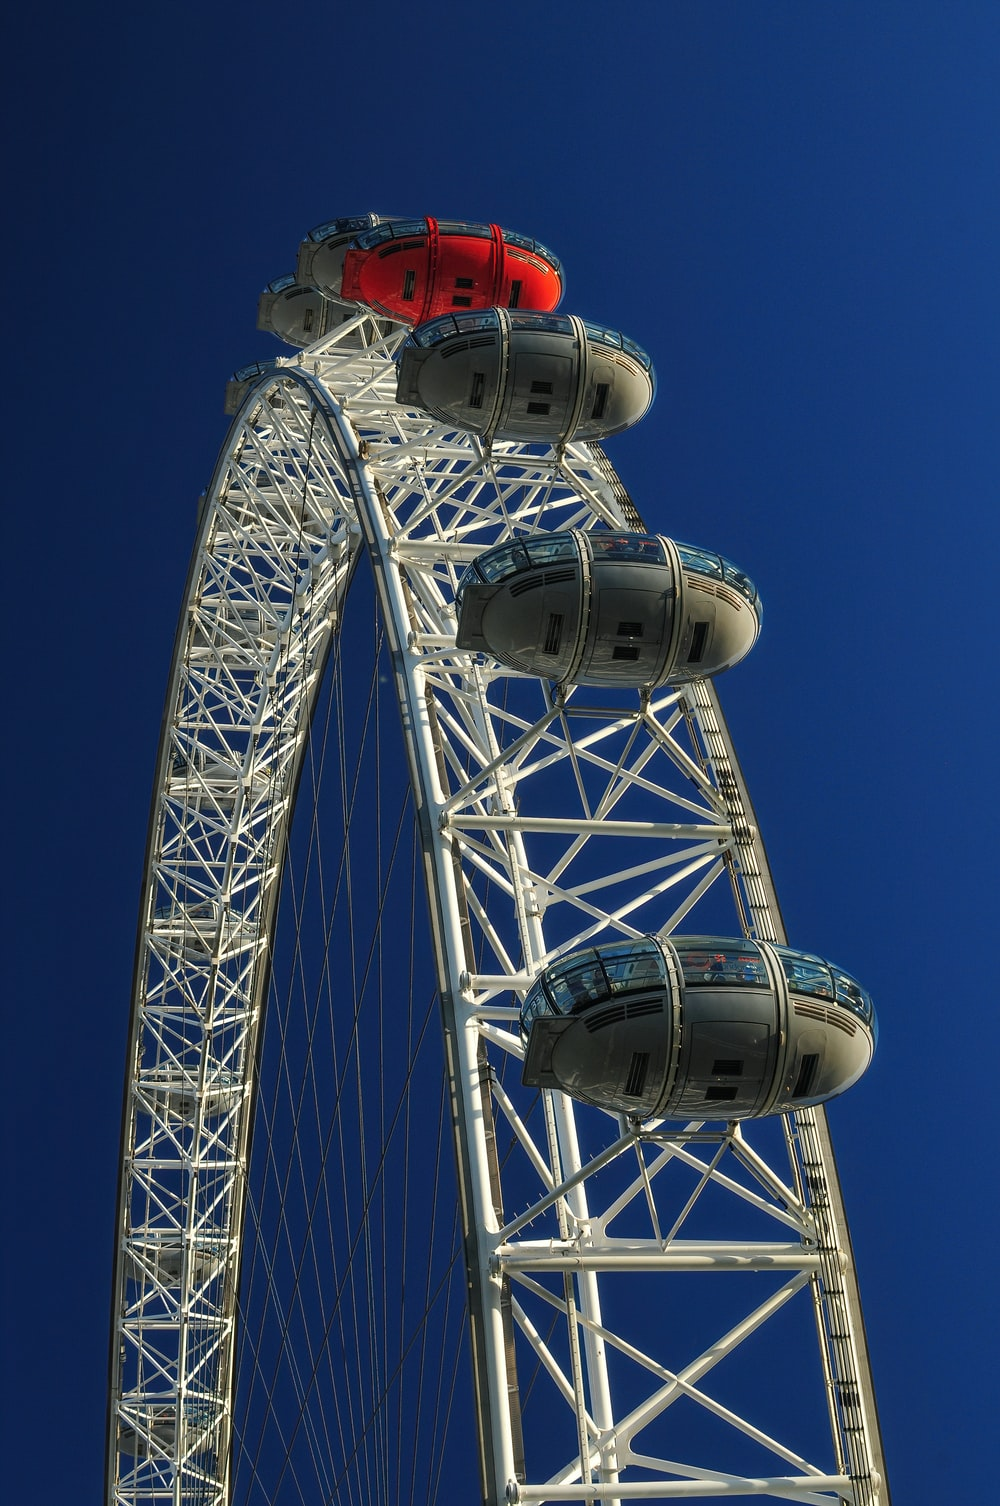 photo of white and red Ferris Wheel